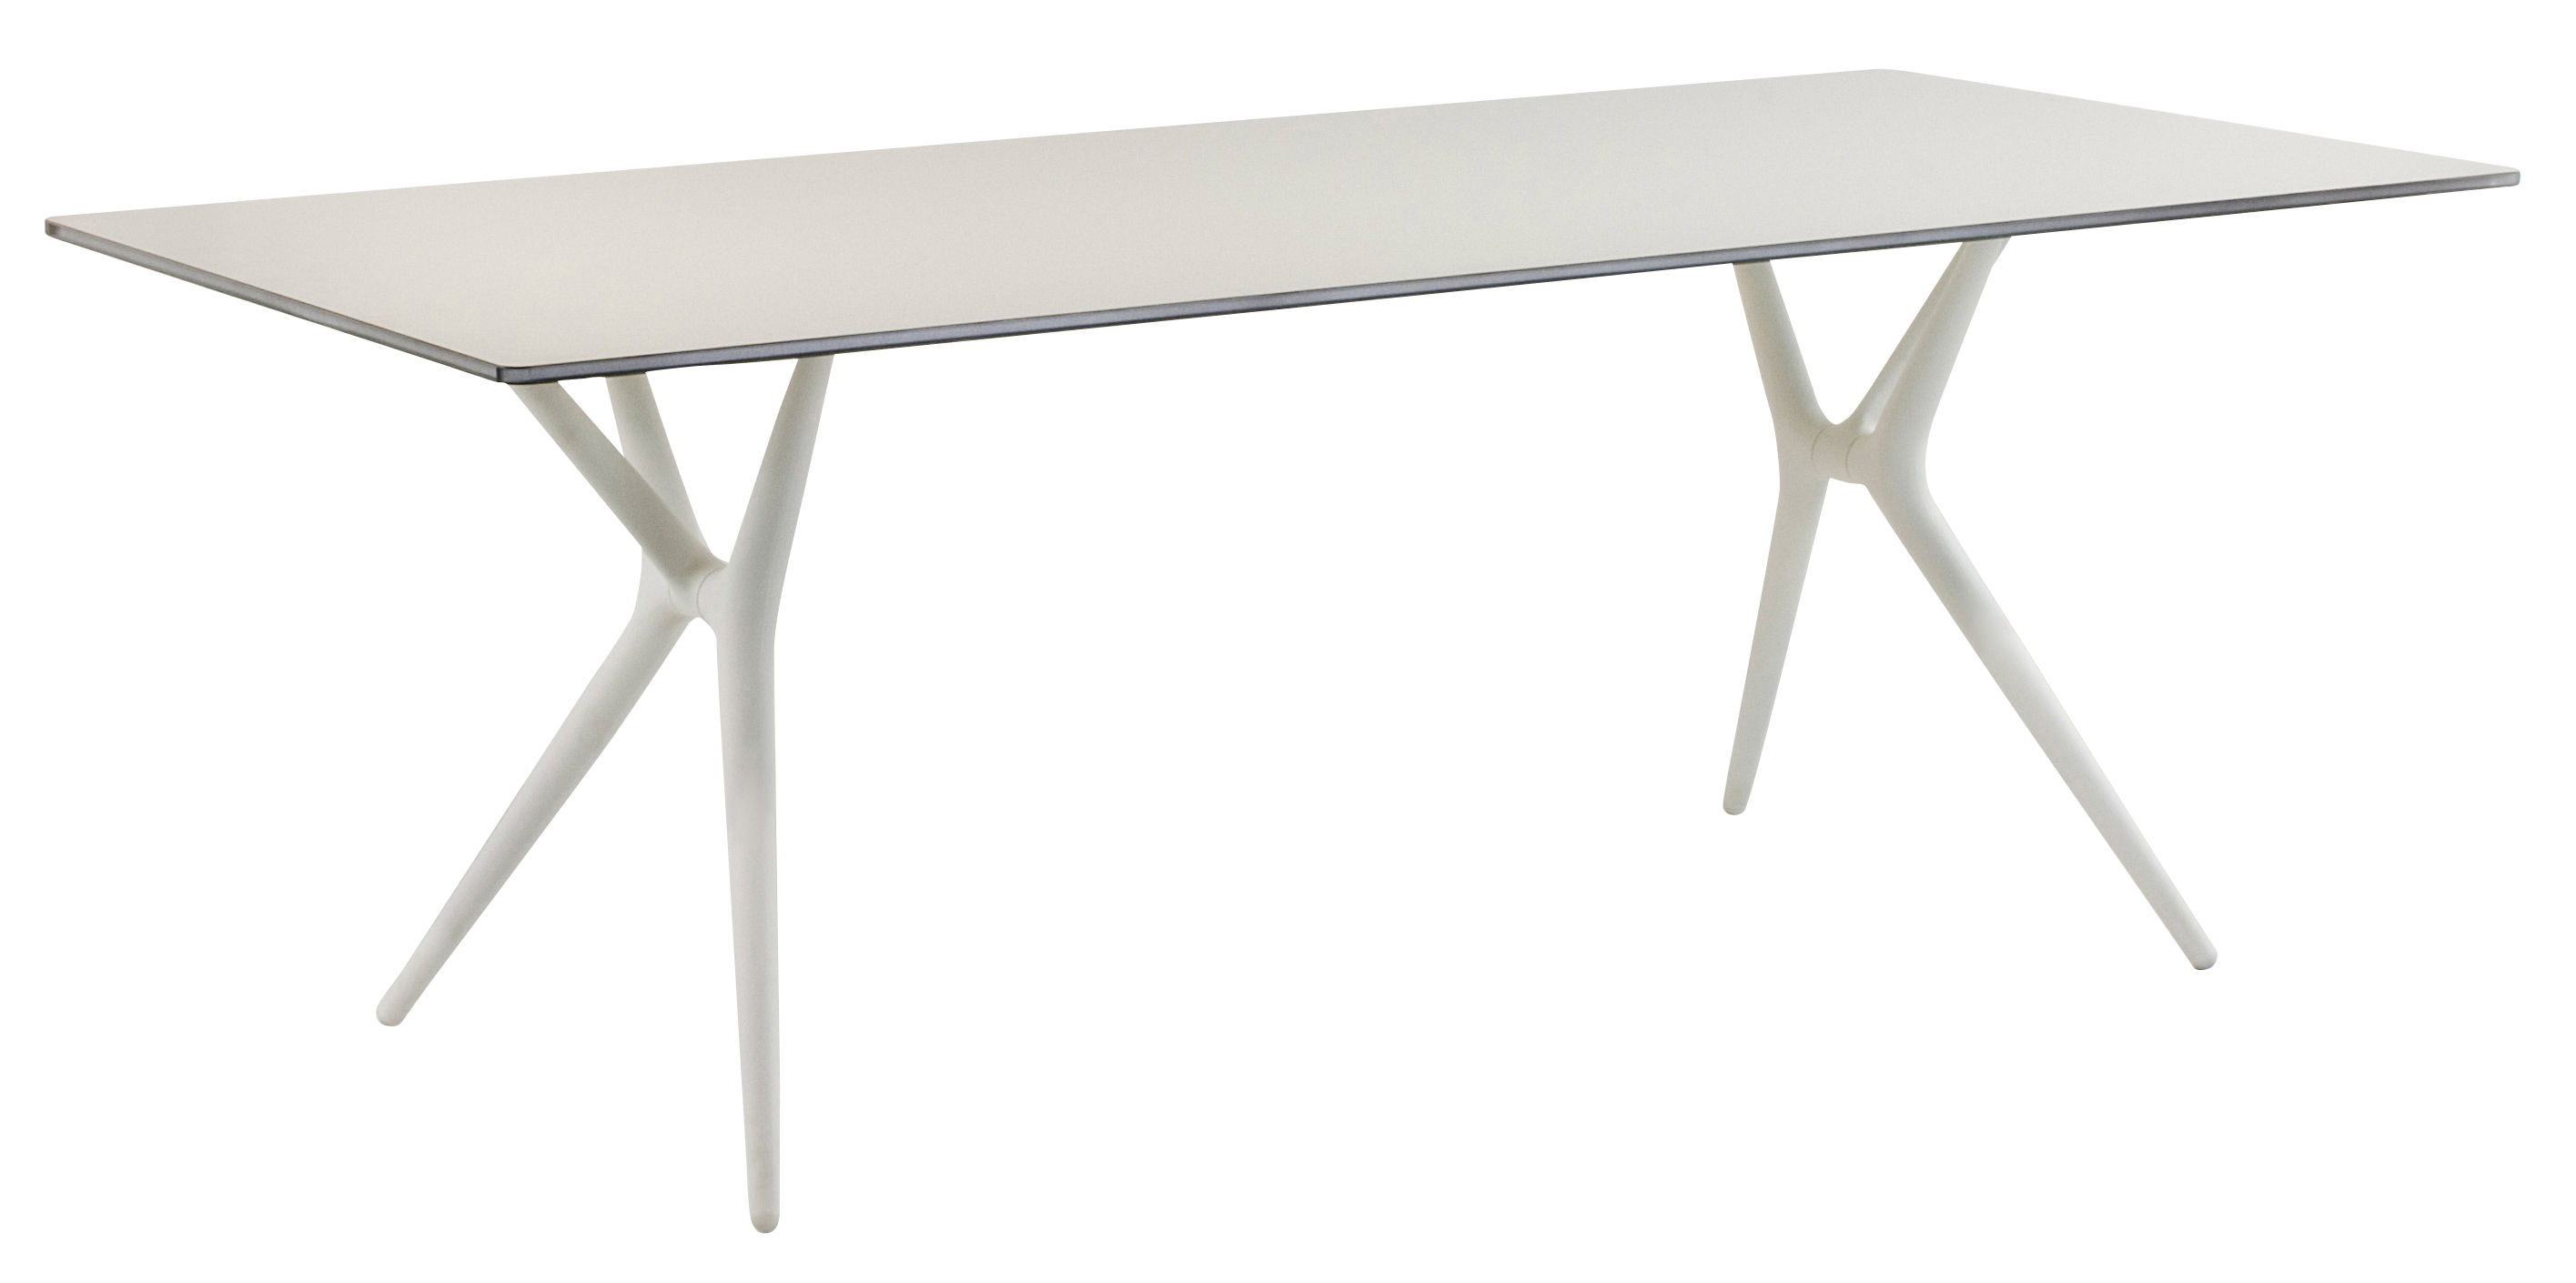 Spoon foldable table 140 x 70 cm white white feet by for Table 70x140